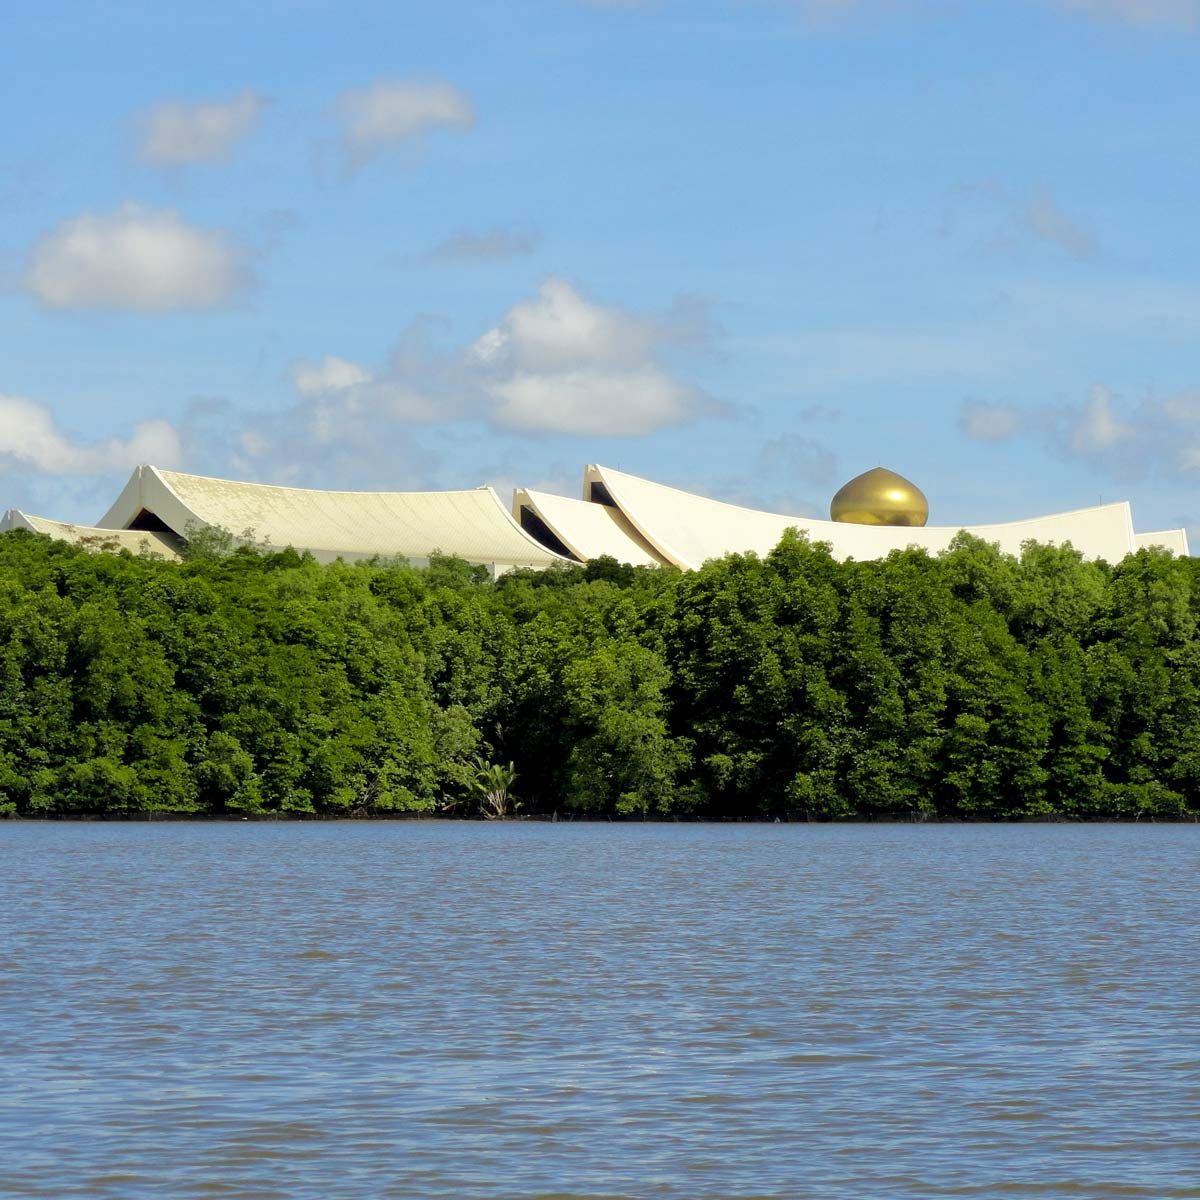 The Istana Nurul Iman, the official residence of the Sultan of Brunei and the seat of the Brunei government